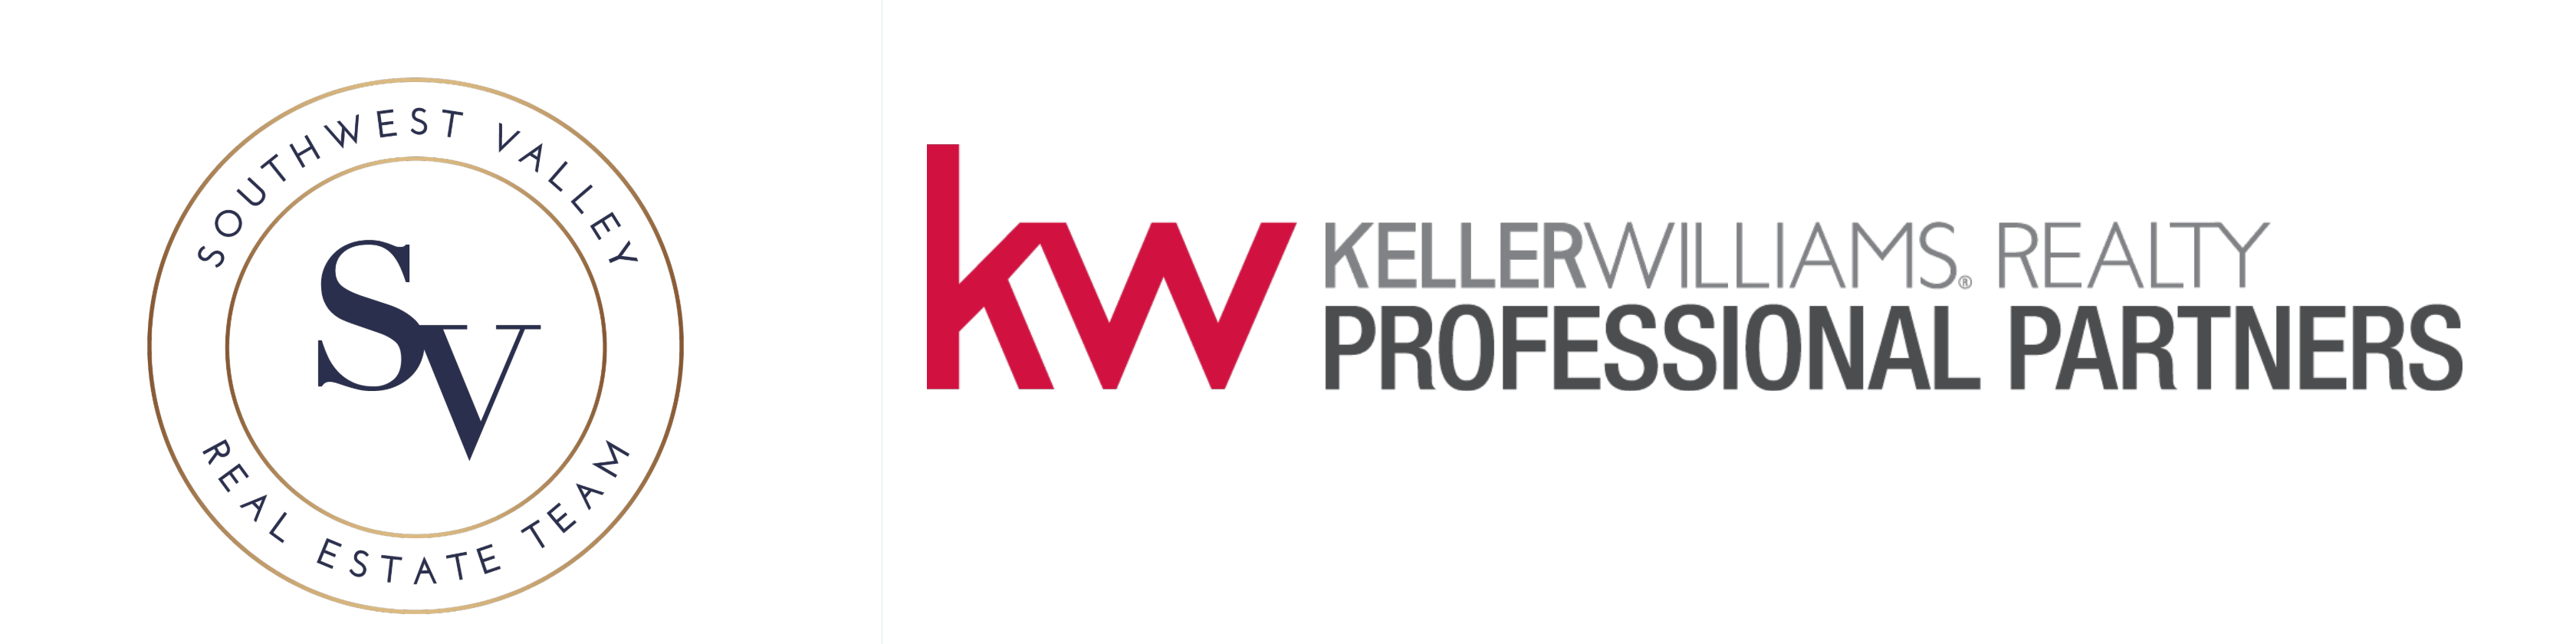 Southwest Valley Real Estate | Keller Williams Professional Partners